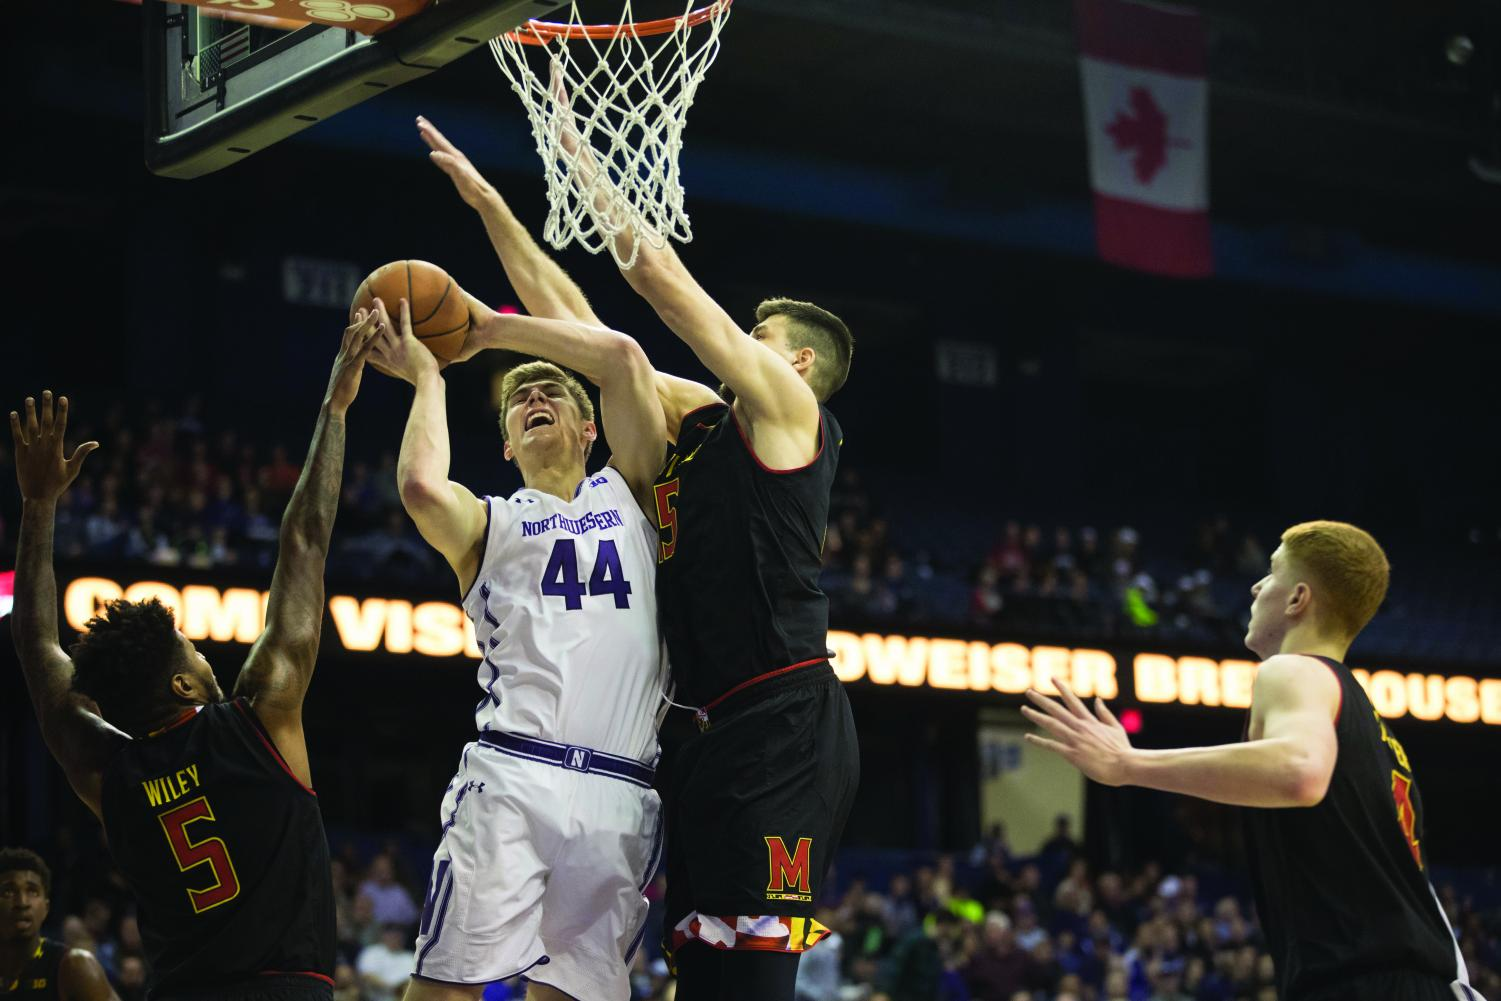 Gavin Skelly finishes a layup. The senior led the Wildcats with 15 points, but they fell after Maryland's late run.